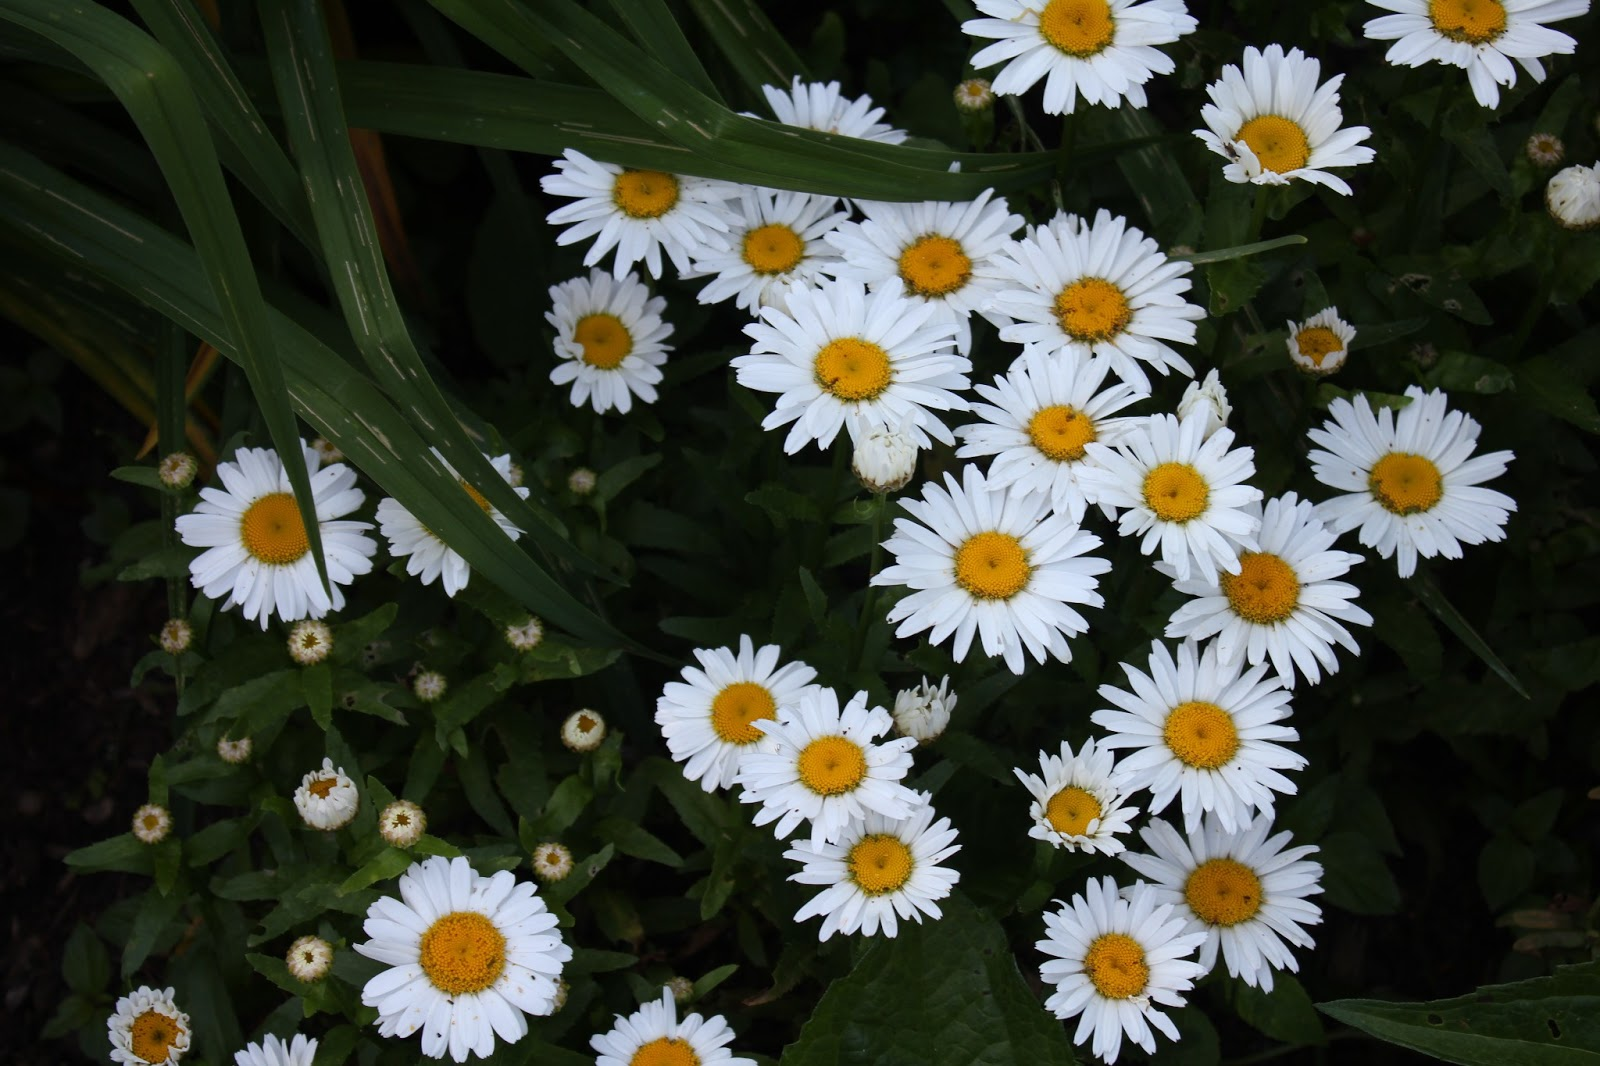 Gardening and gardens whats blooming june 2013 and of course my favorite flower of all time the daisy leucanthemum its bright white petals with golden yellow center is so cheery and makes me smile mightylinksfo